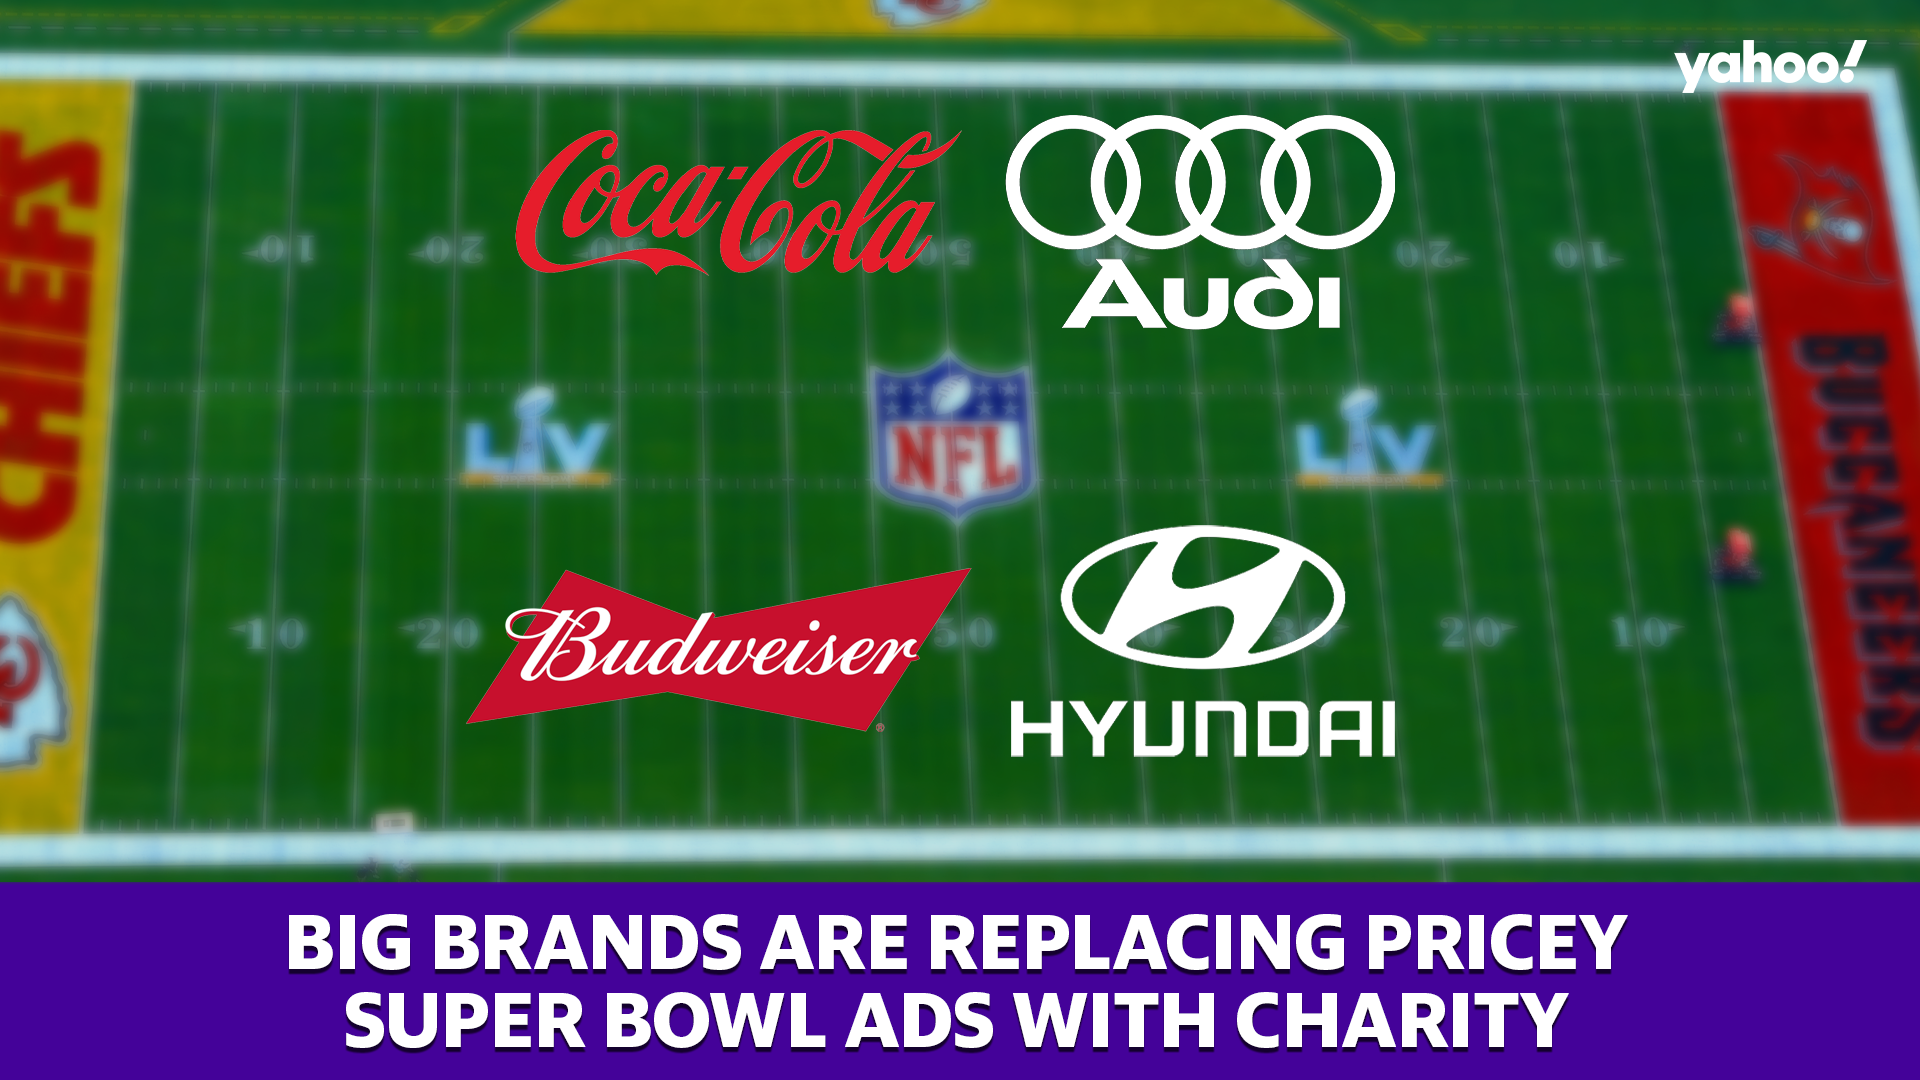 money.yahoo.com: Super Bowl 2021: Hyundai, Coca-Cola, and others replace pricey Super Bowl ads with charity